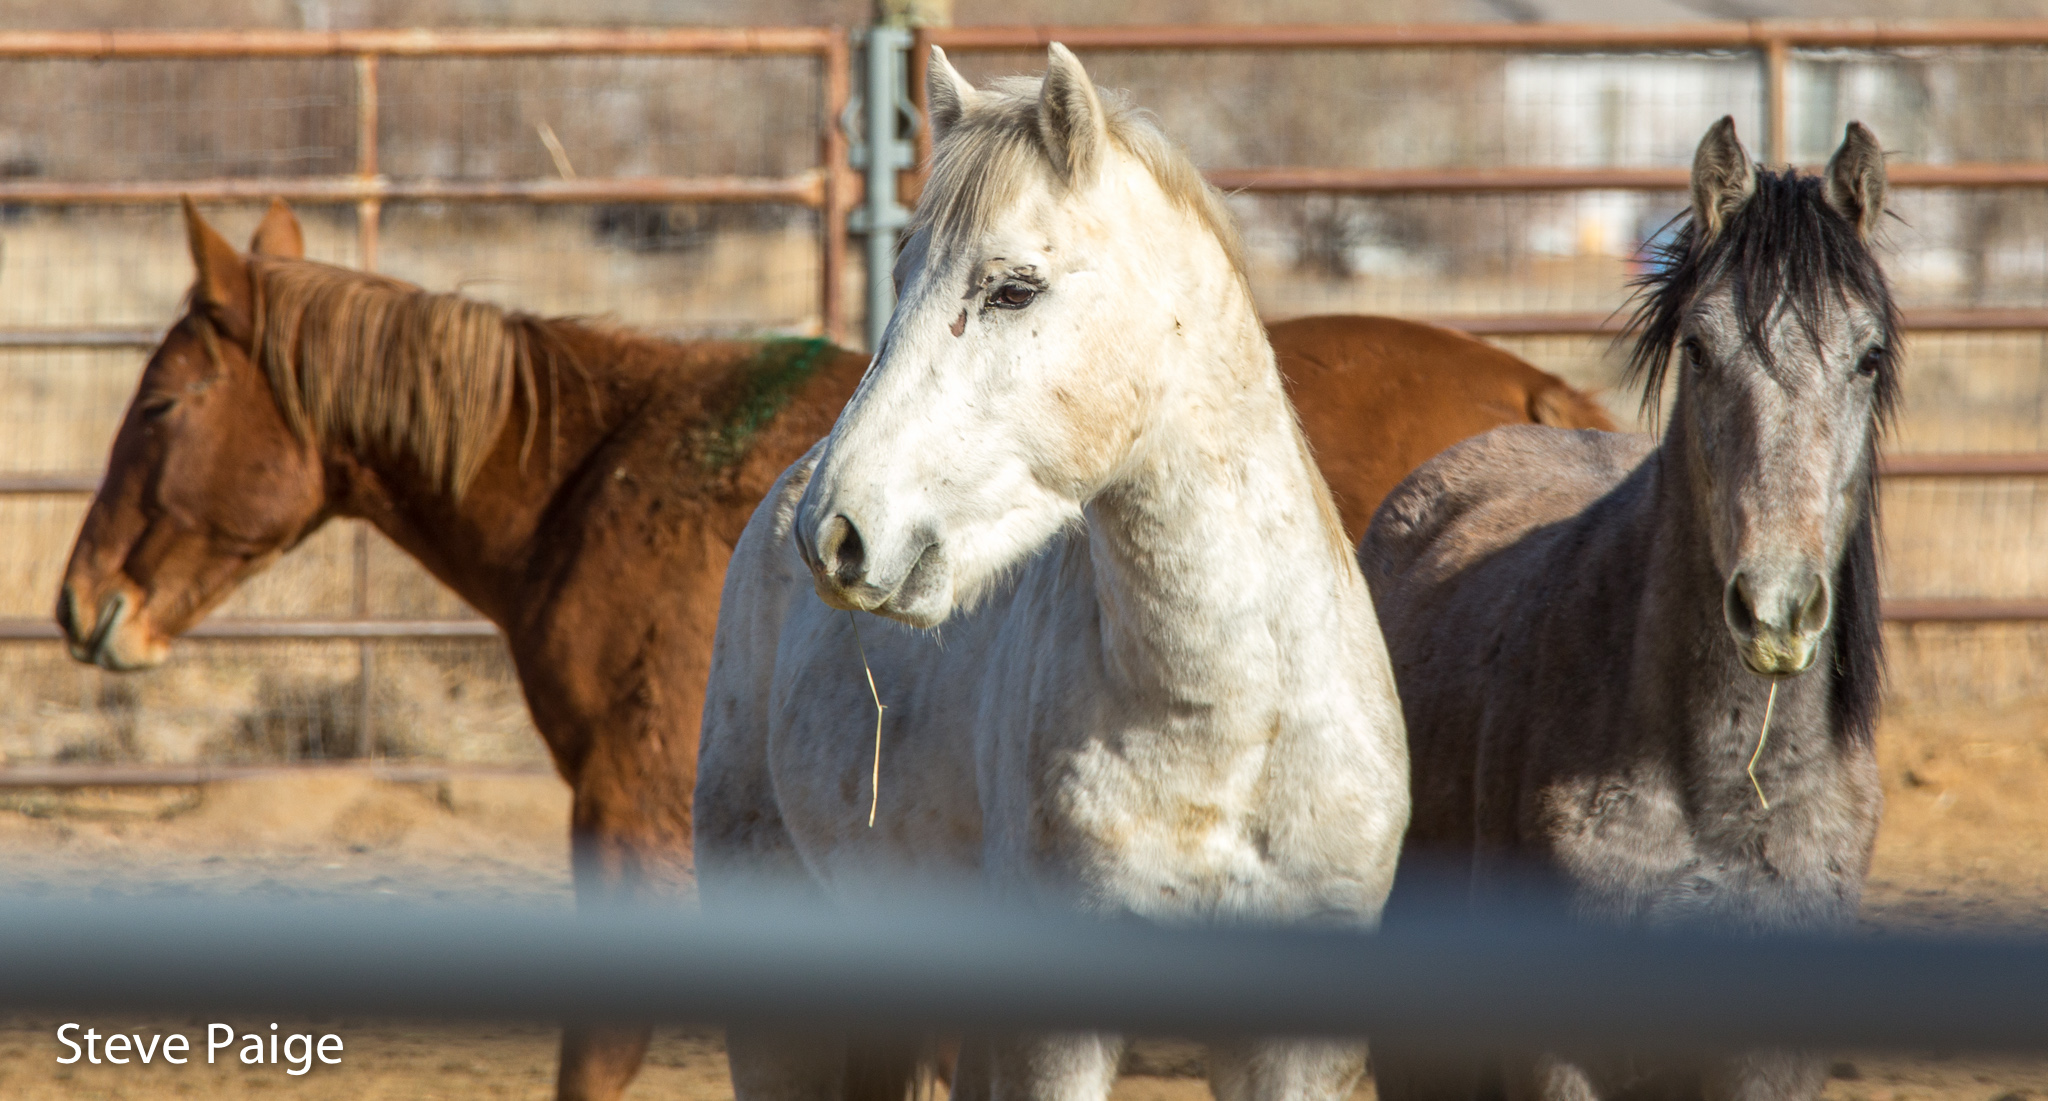 Fox & Lake Range HMA roundup ends with 189 wild horses captured